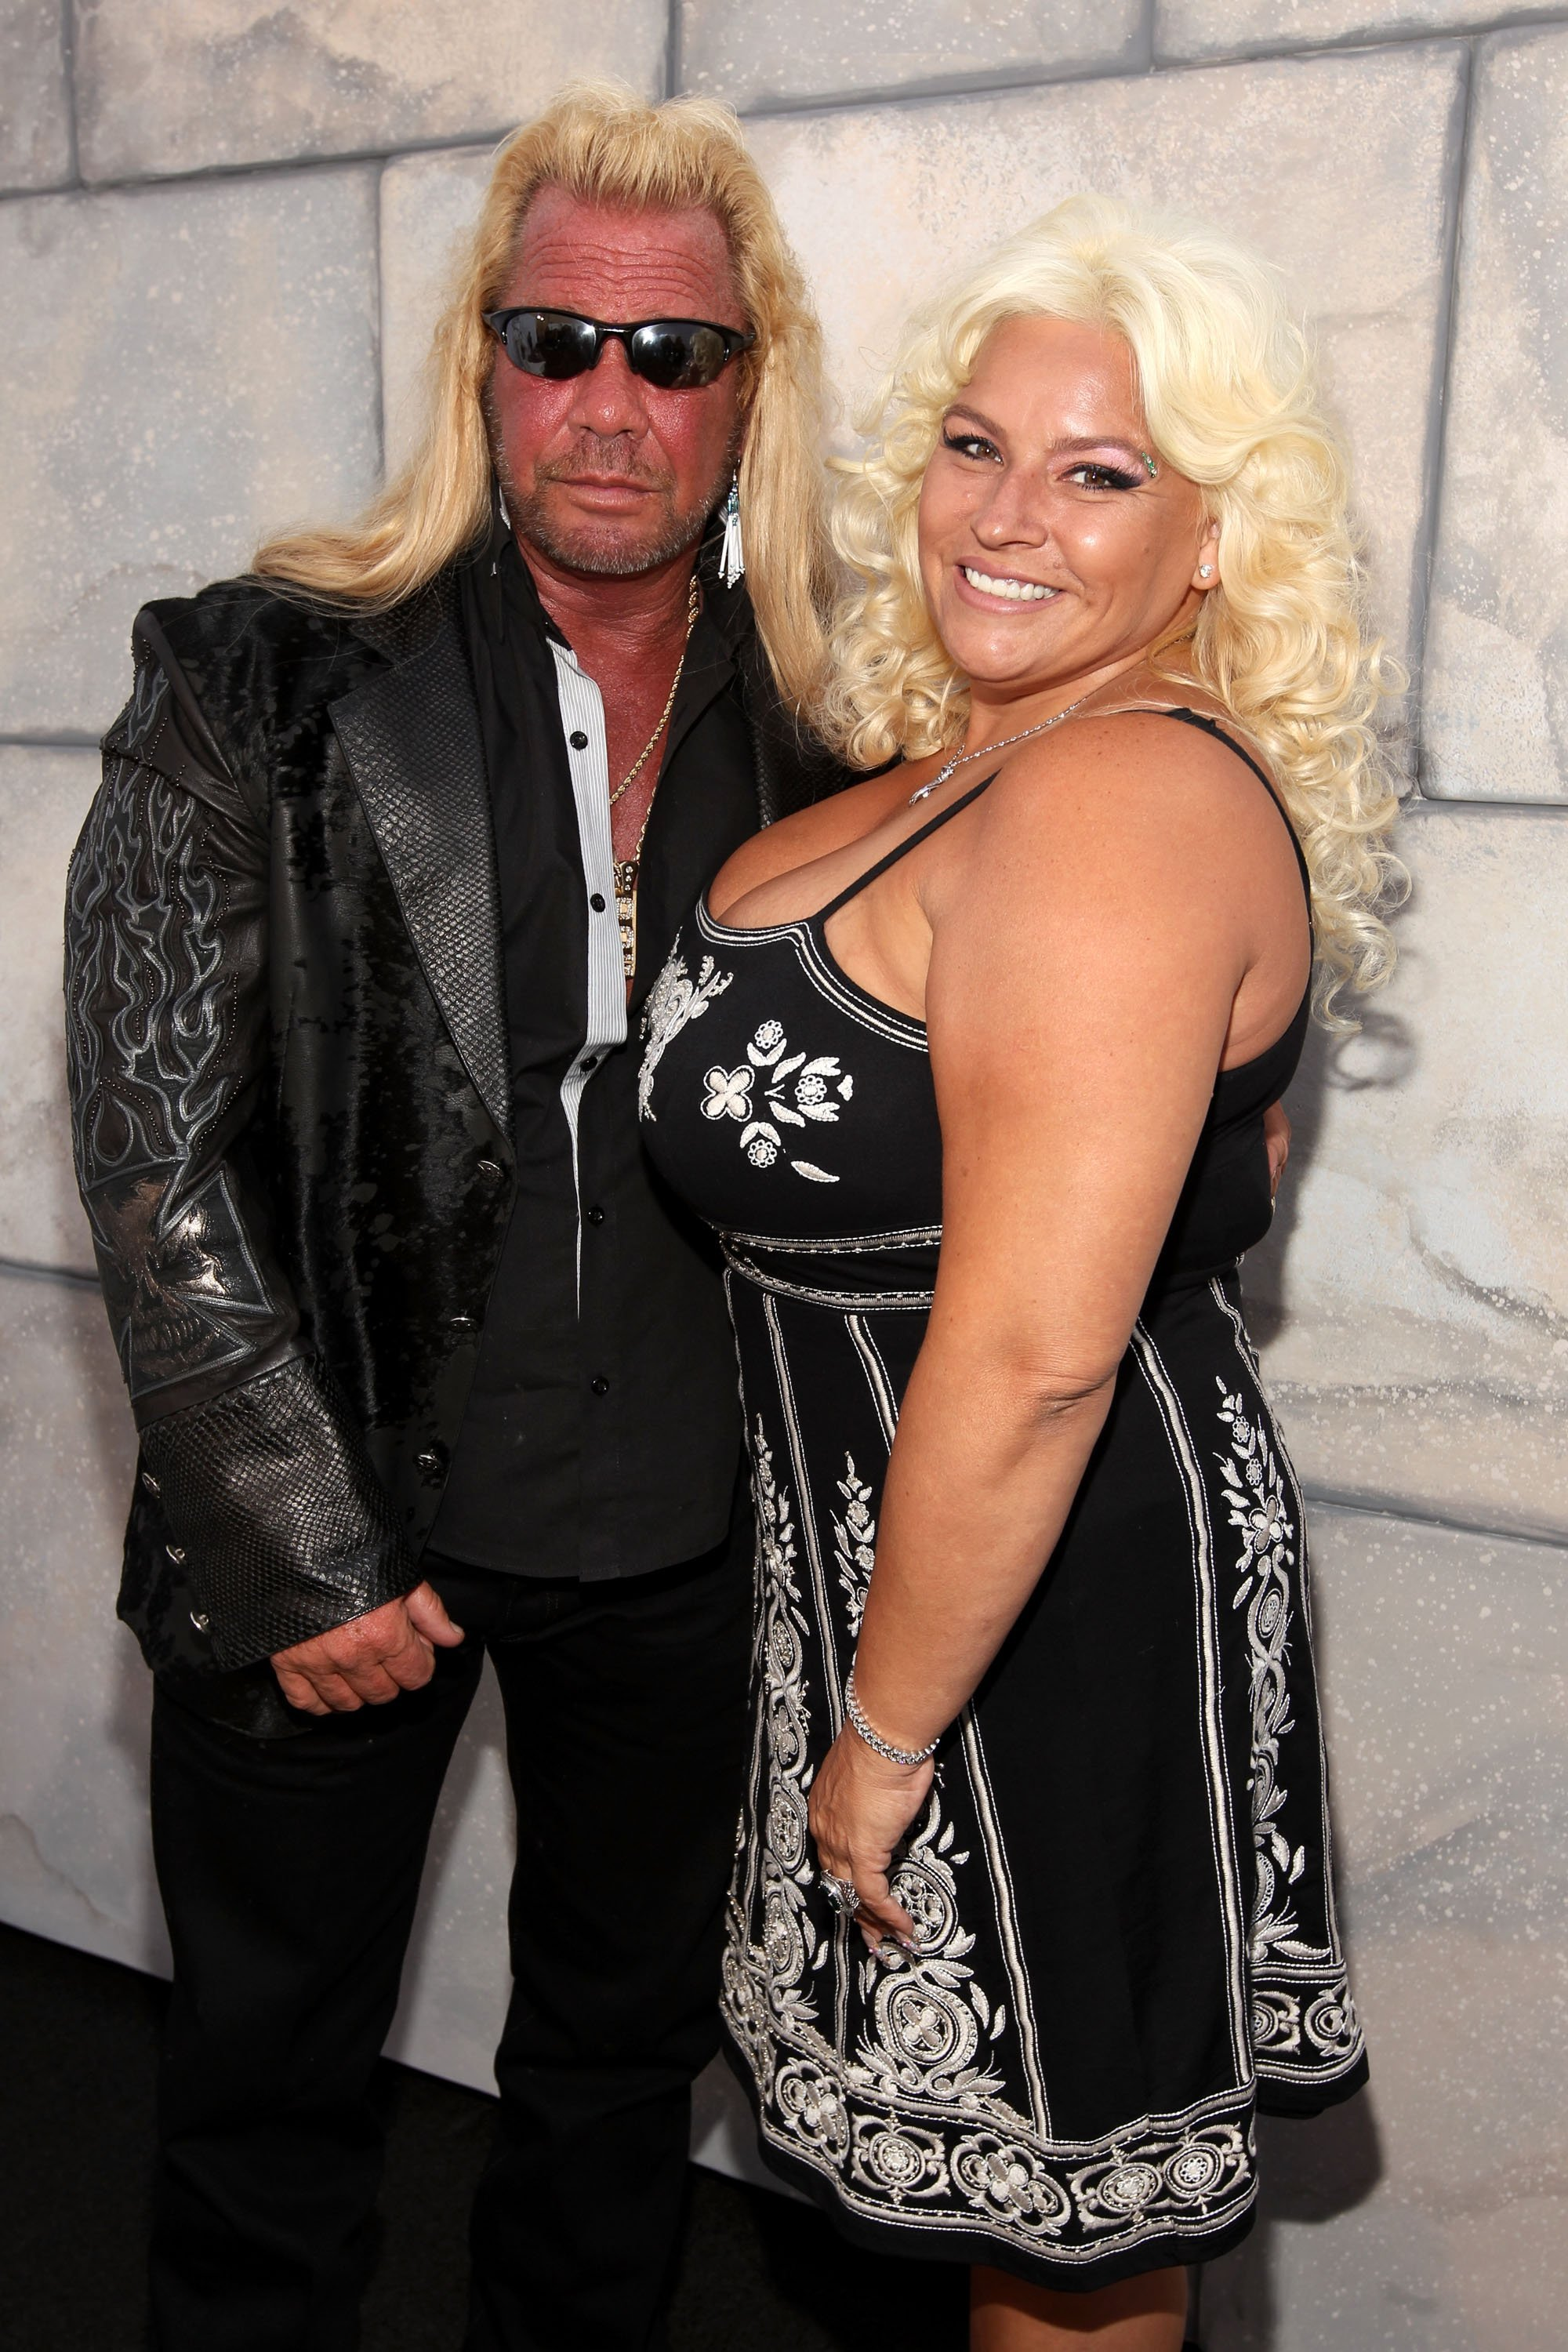 Beth Chapman and Duane Chapman. | Source: Getty Images